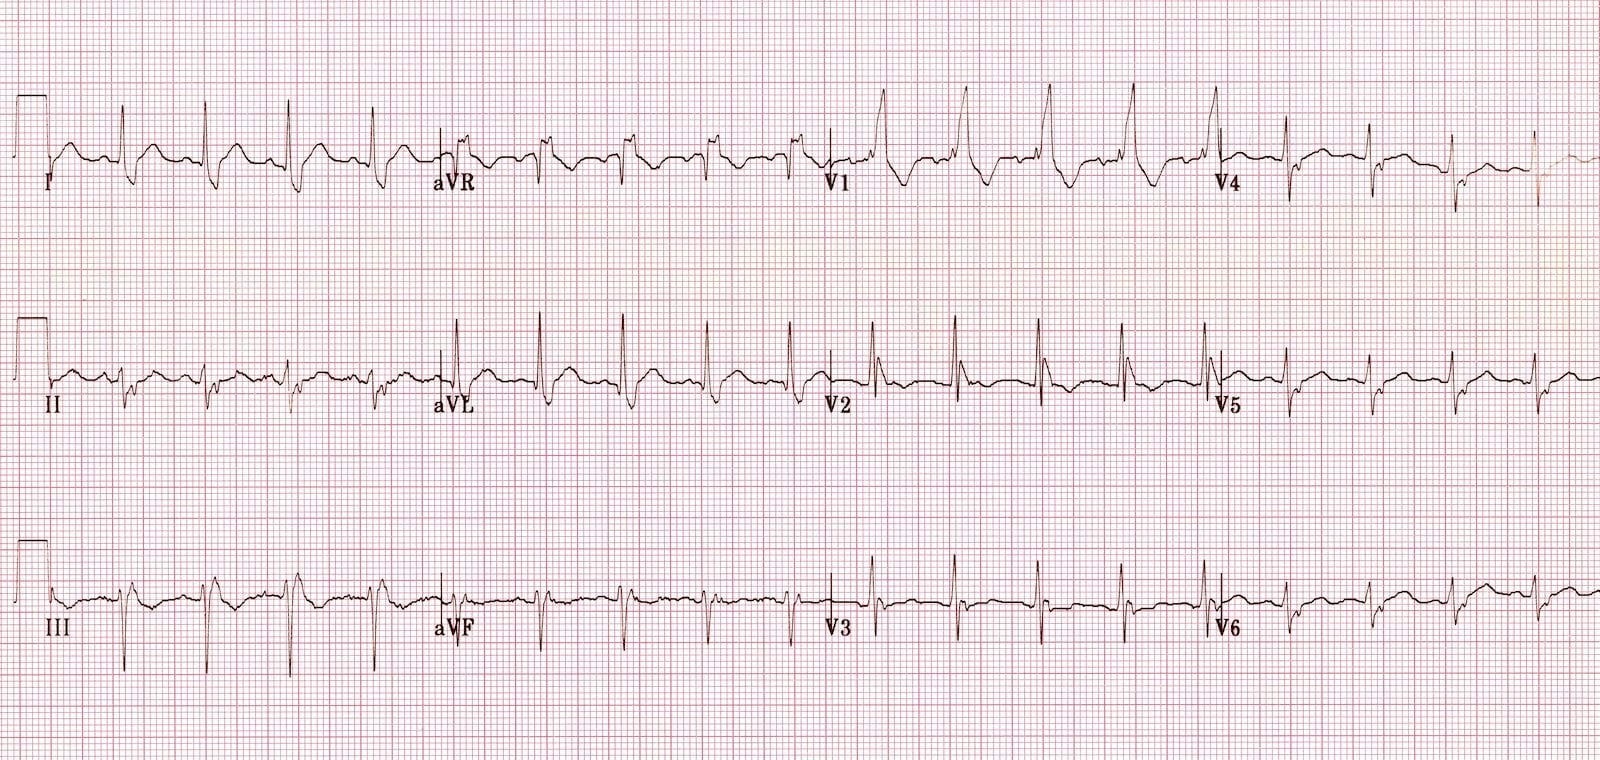 Bifascicular block showing RBBB and LAFB